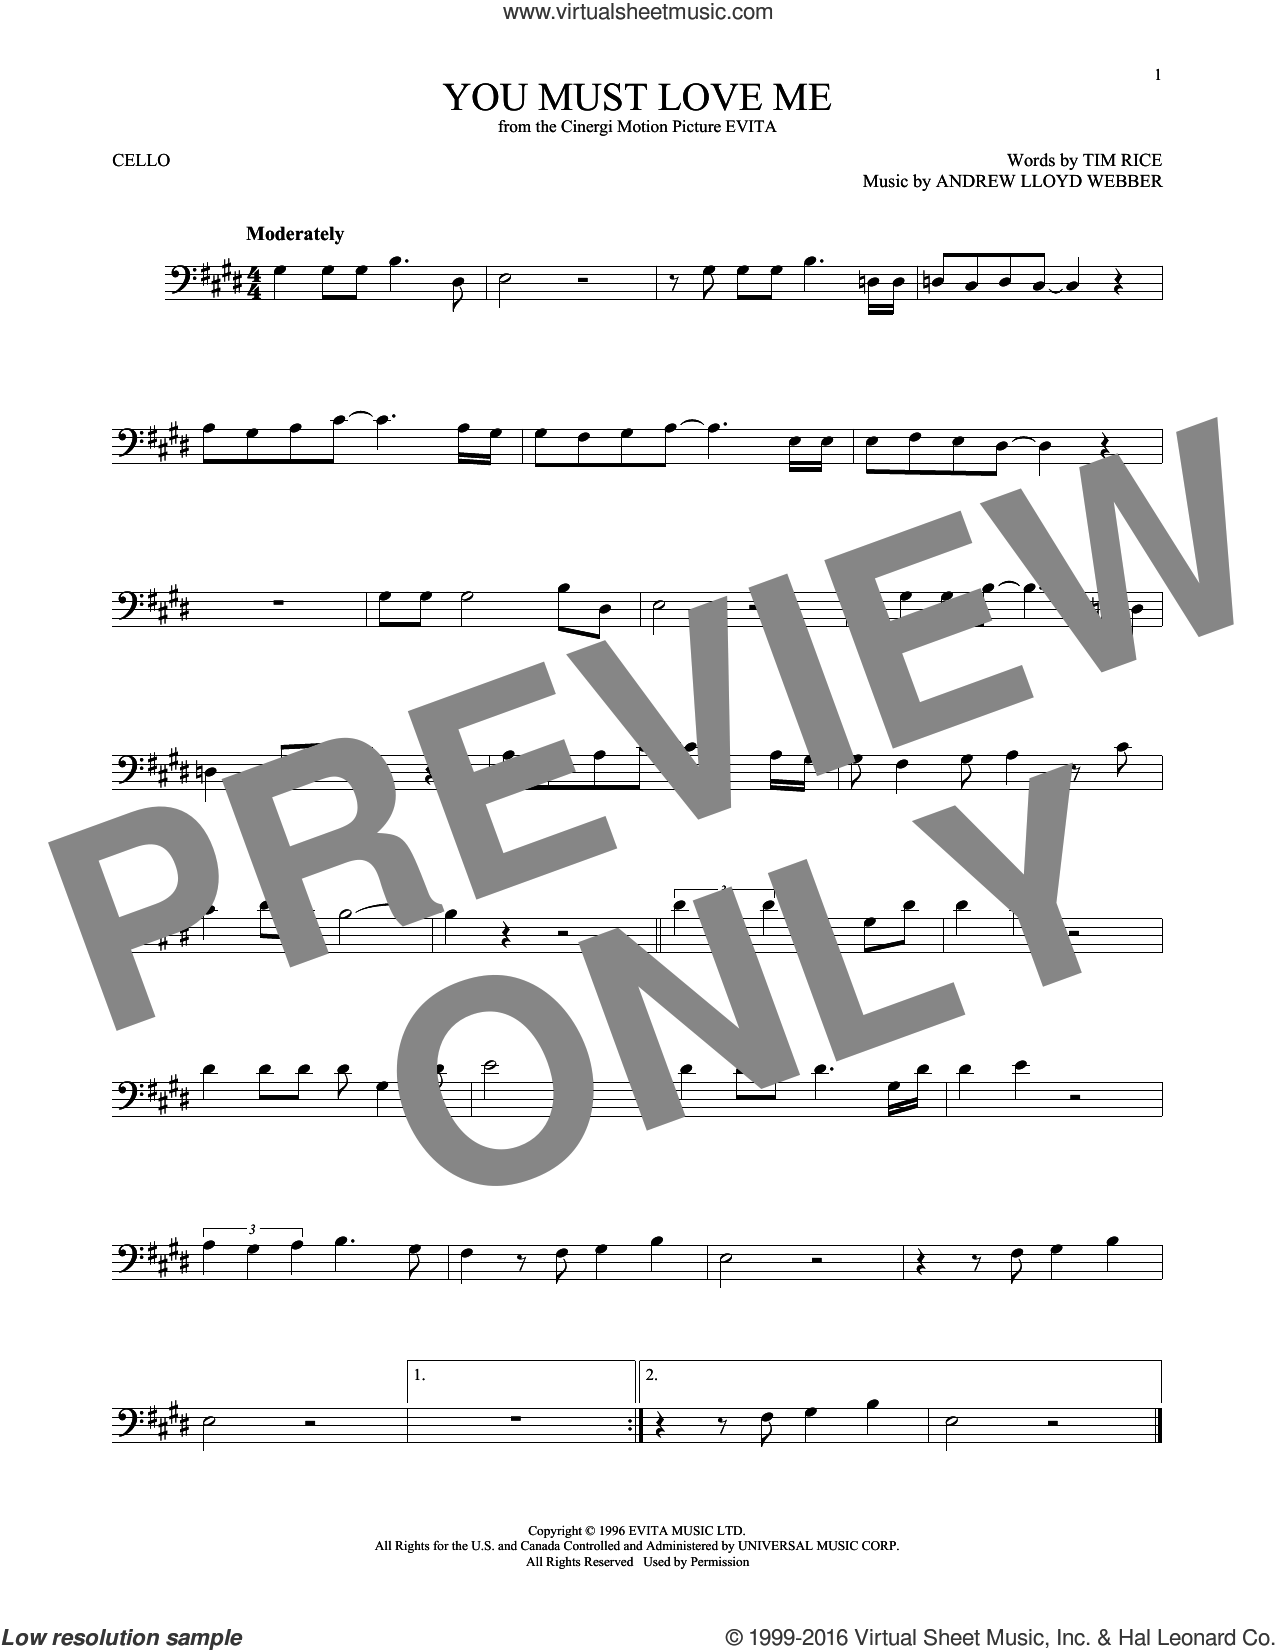 You Must Love Me sheet music for cello solo by Andrew Lloyd Webber, Madonna and Tim Rice, intermediate